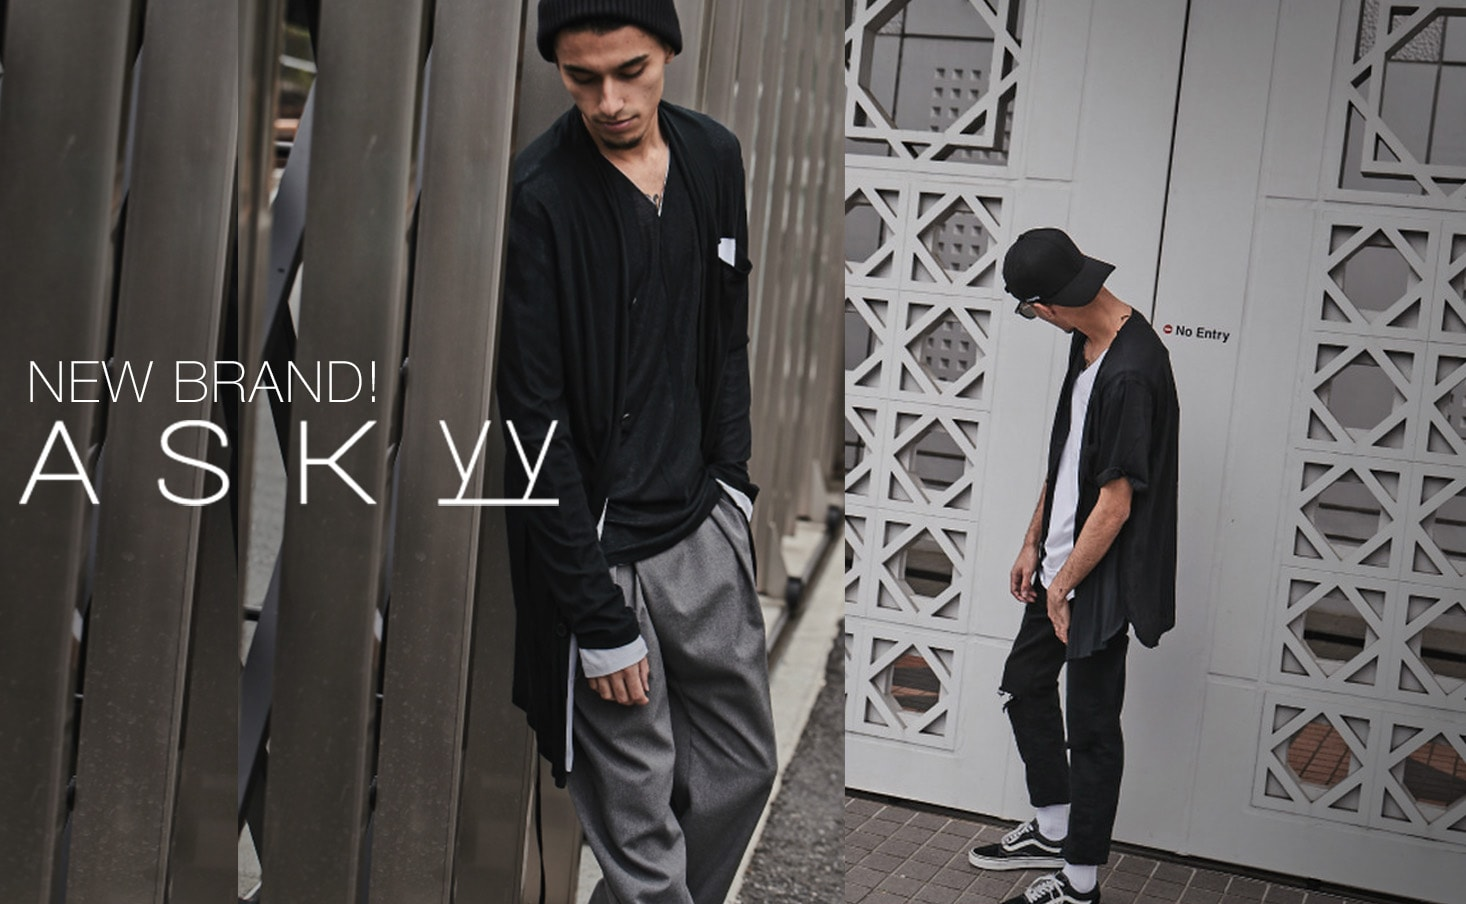 ASKyy 2018SS collection